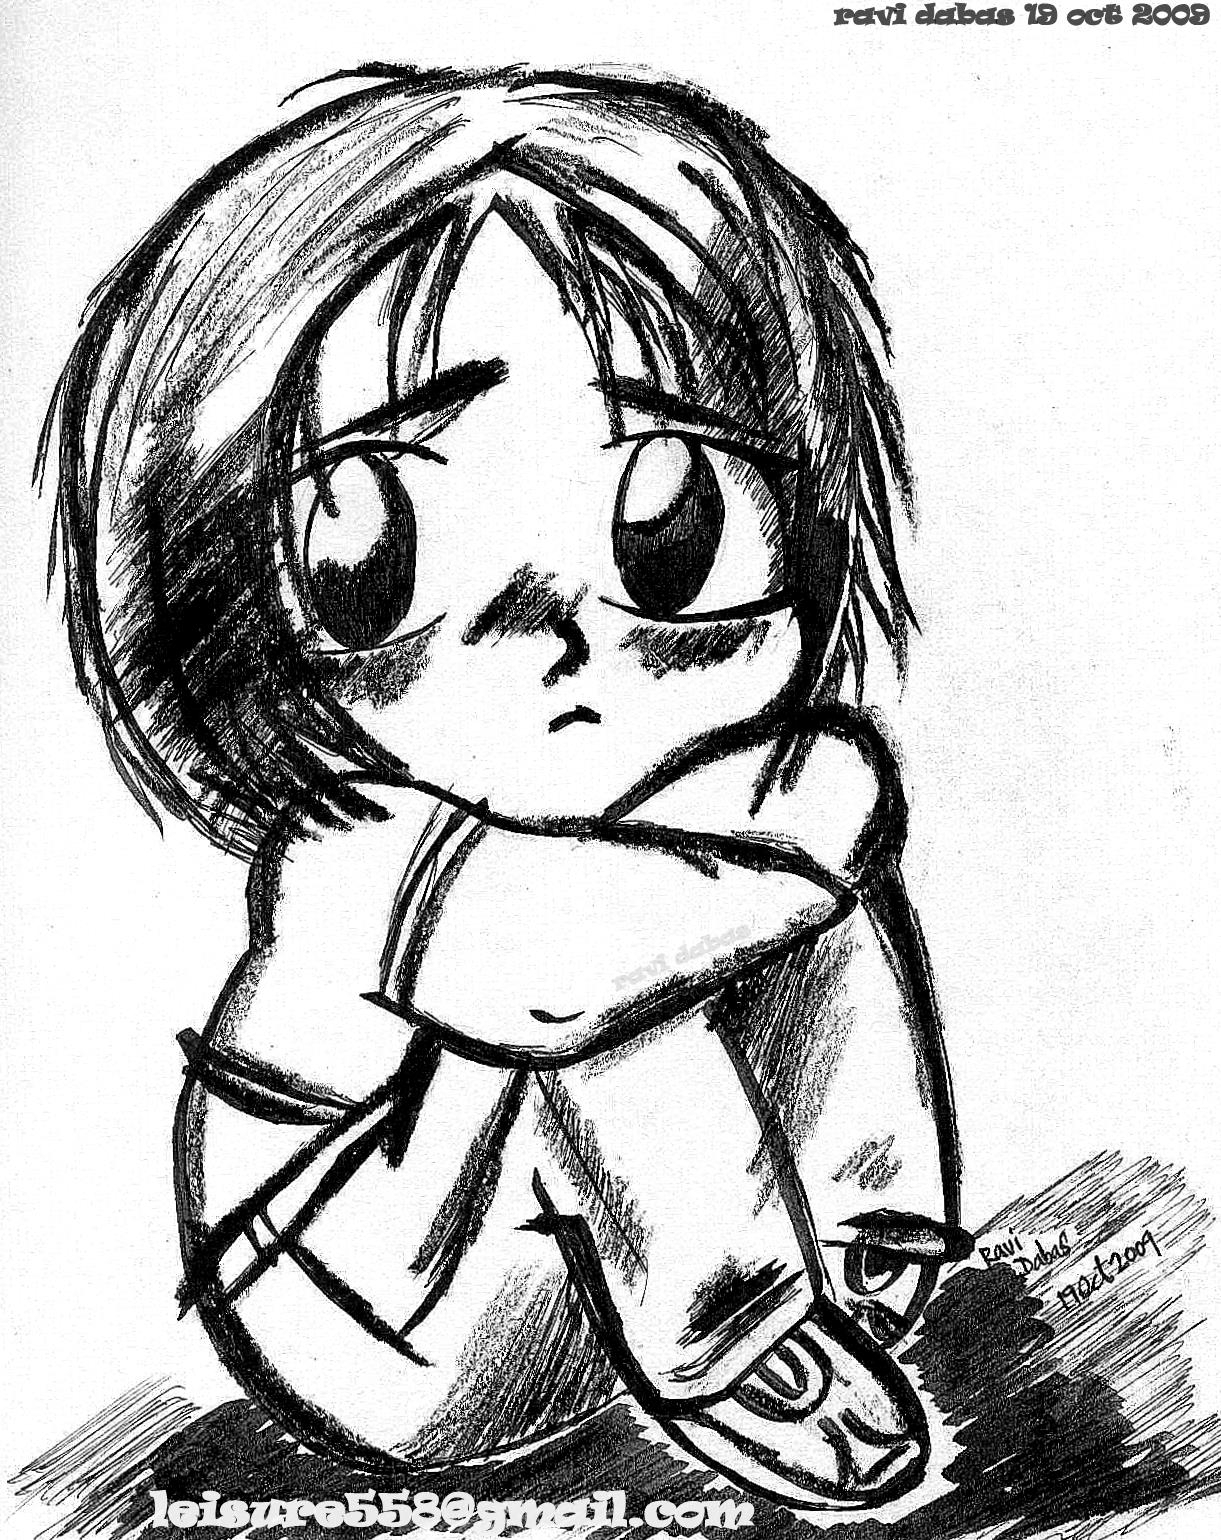 1221x1540 Pencil Sketches Sad Boy Sad Boy Guitar Pencil Sketch Sad Boy